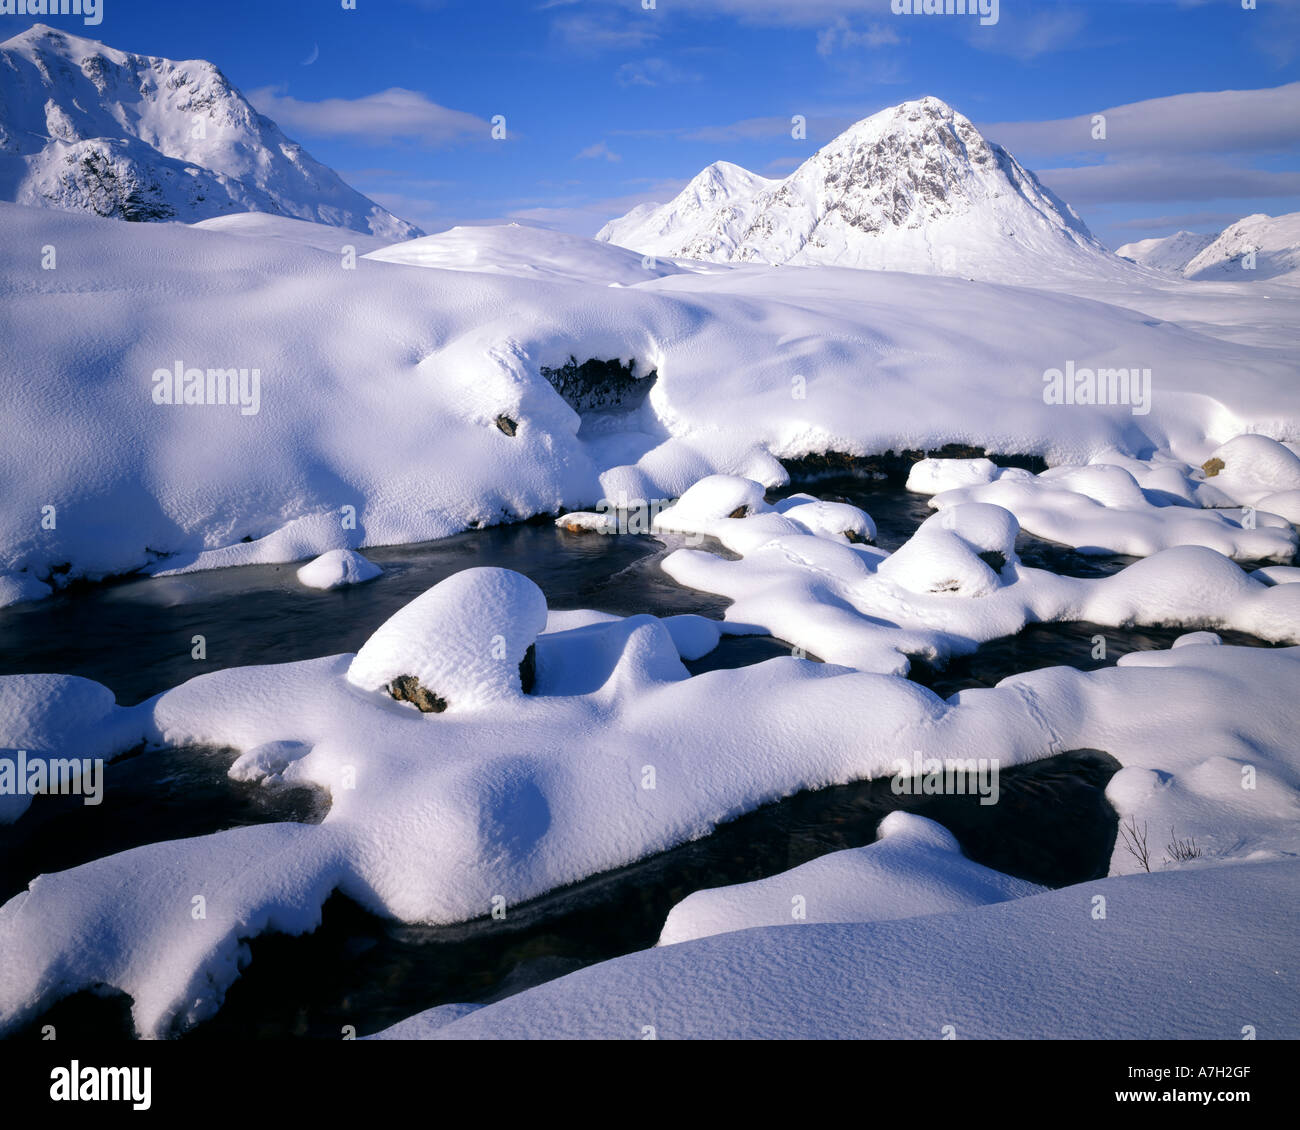 GB - Schottland: Winter in Glen Coe Stockbild